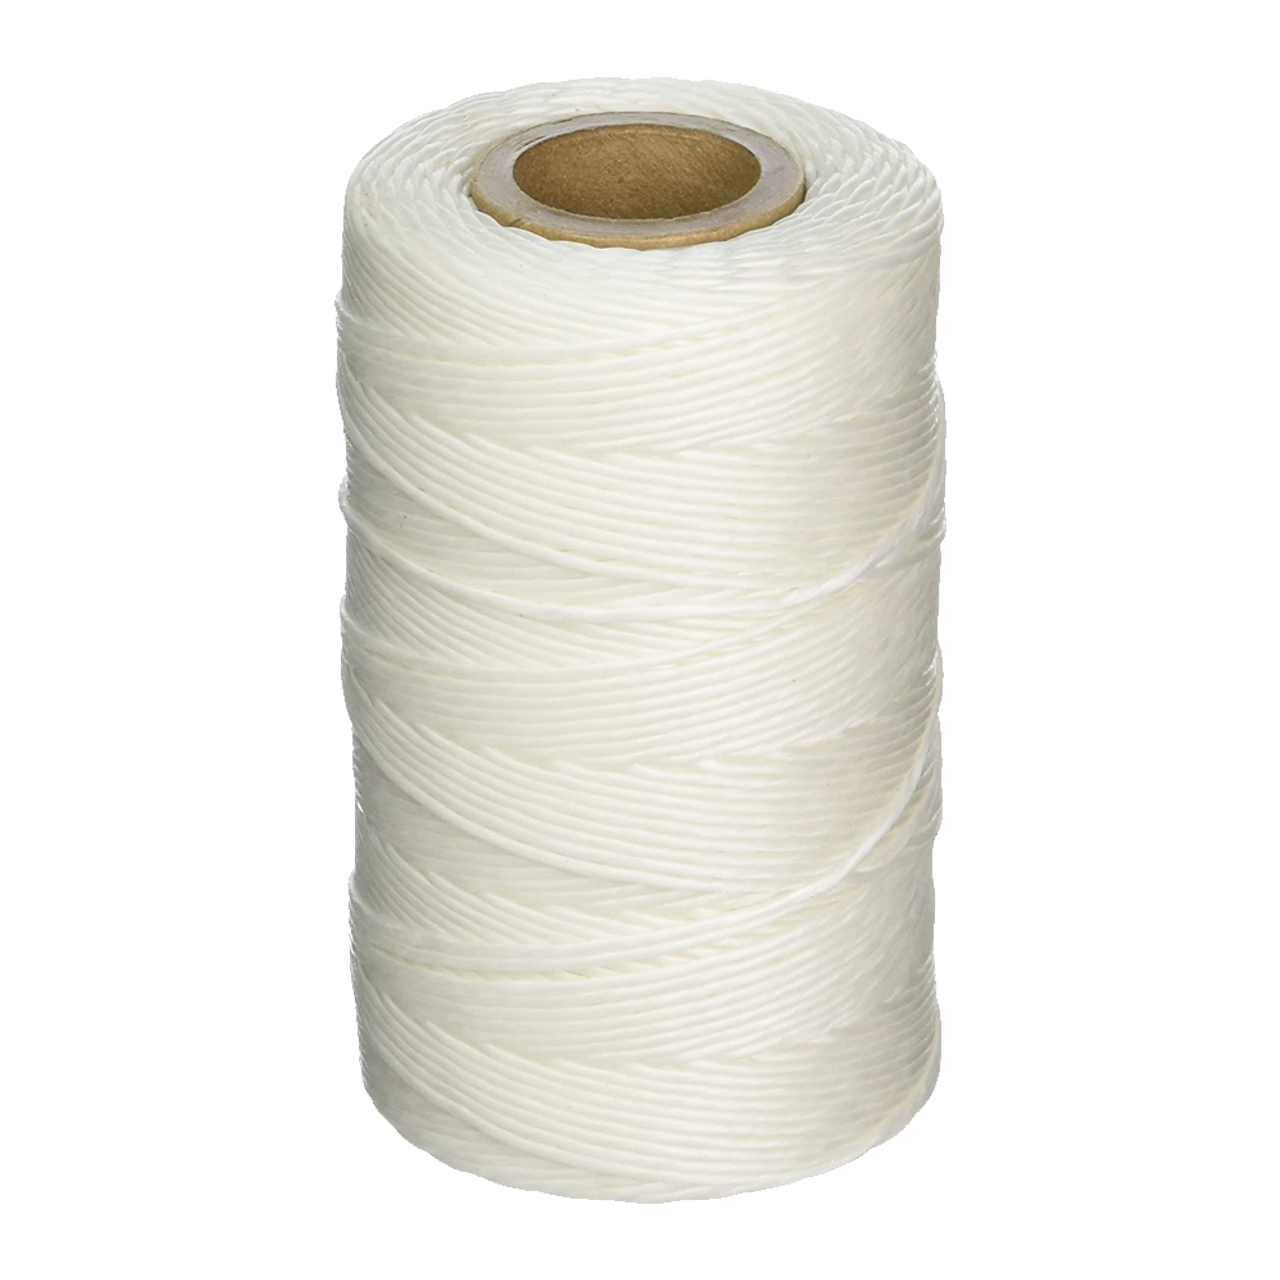 Lacing Twine 8 Ply Polyester 175 Yards